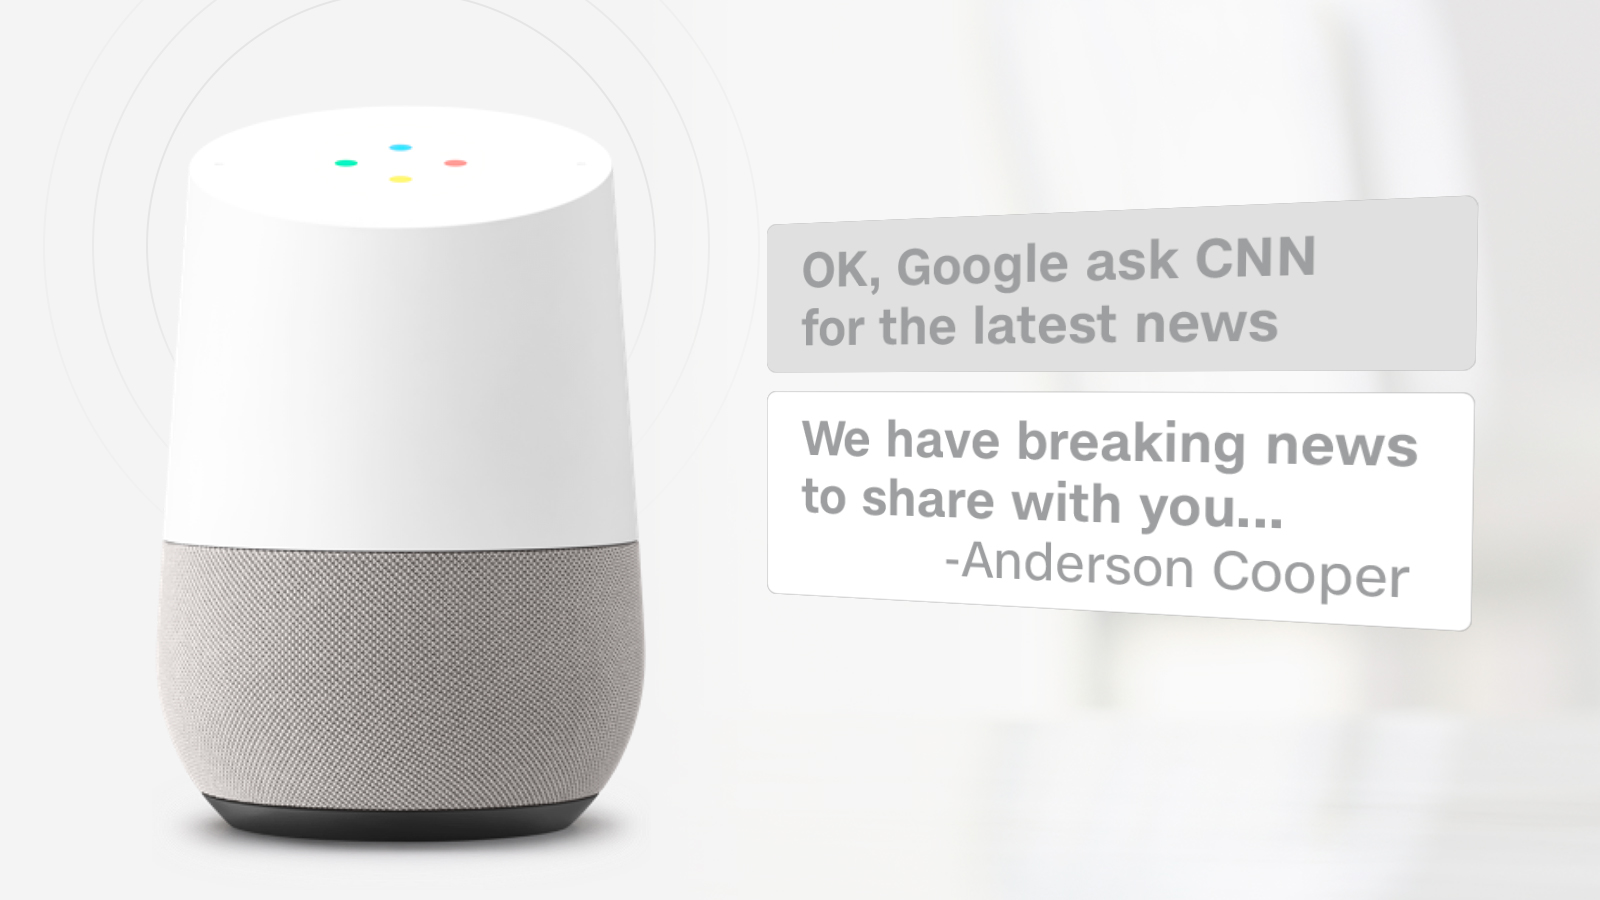 CNN Now Available on Google Home